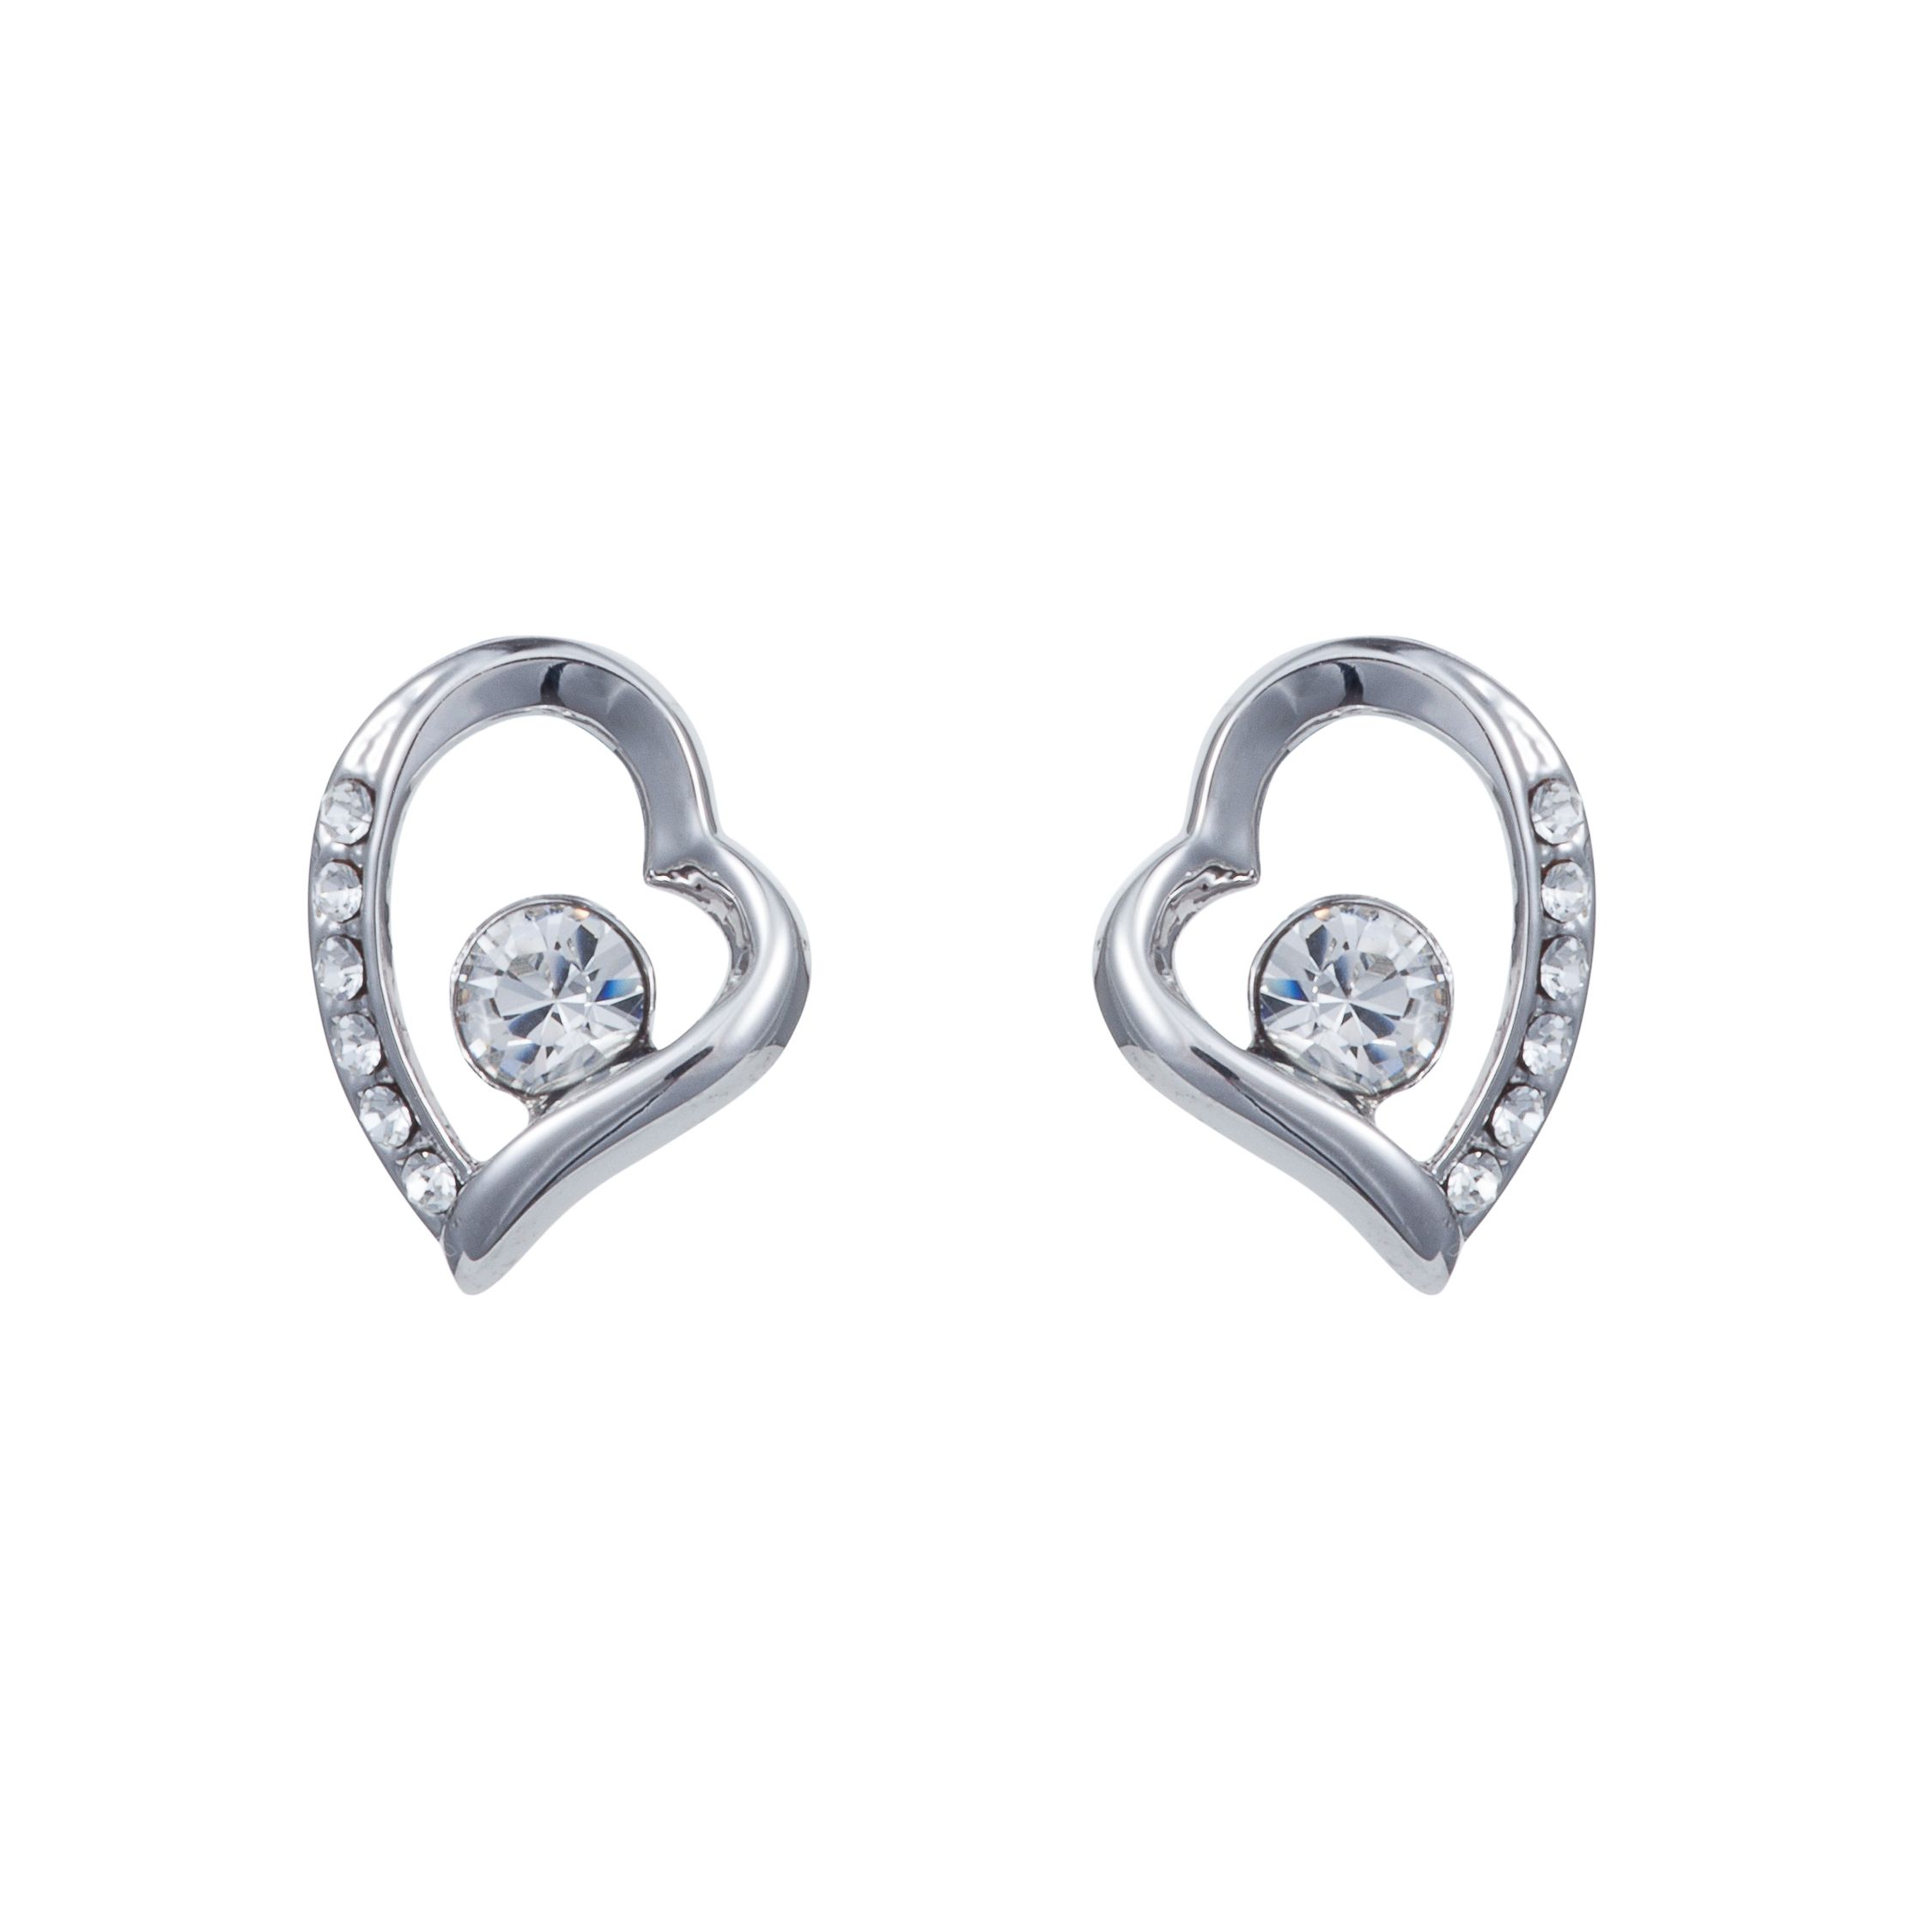 Tapered heart earring